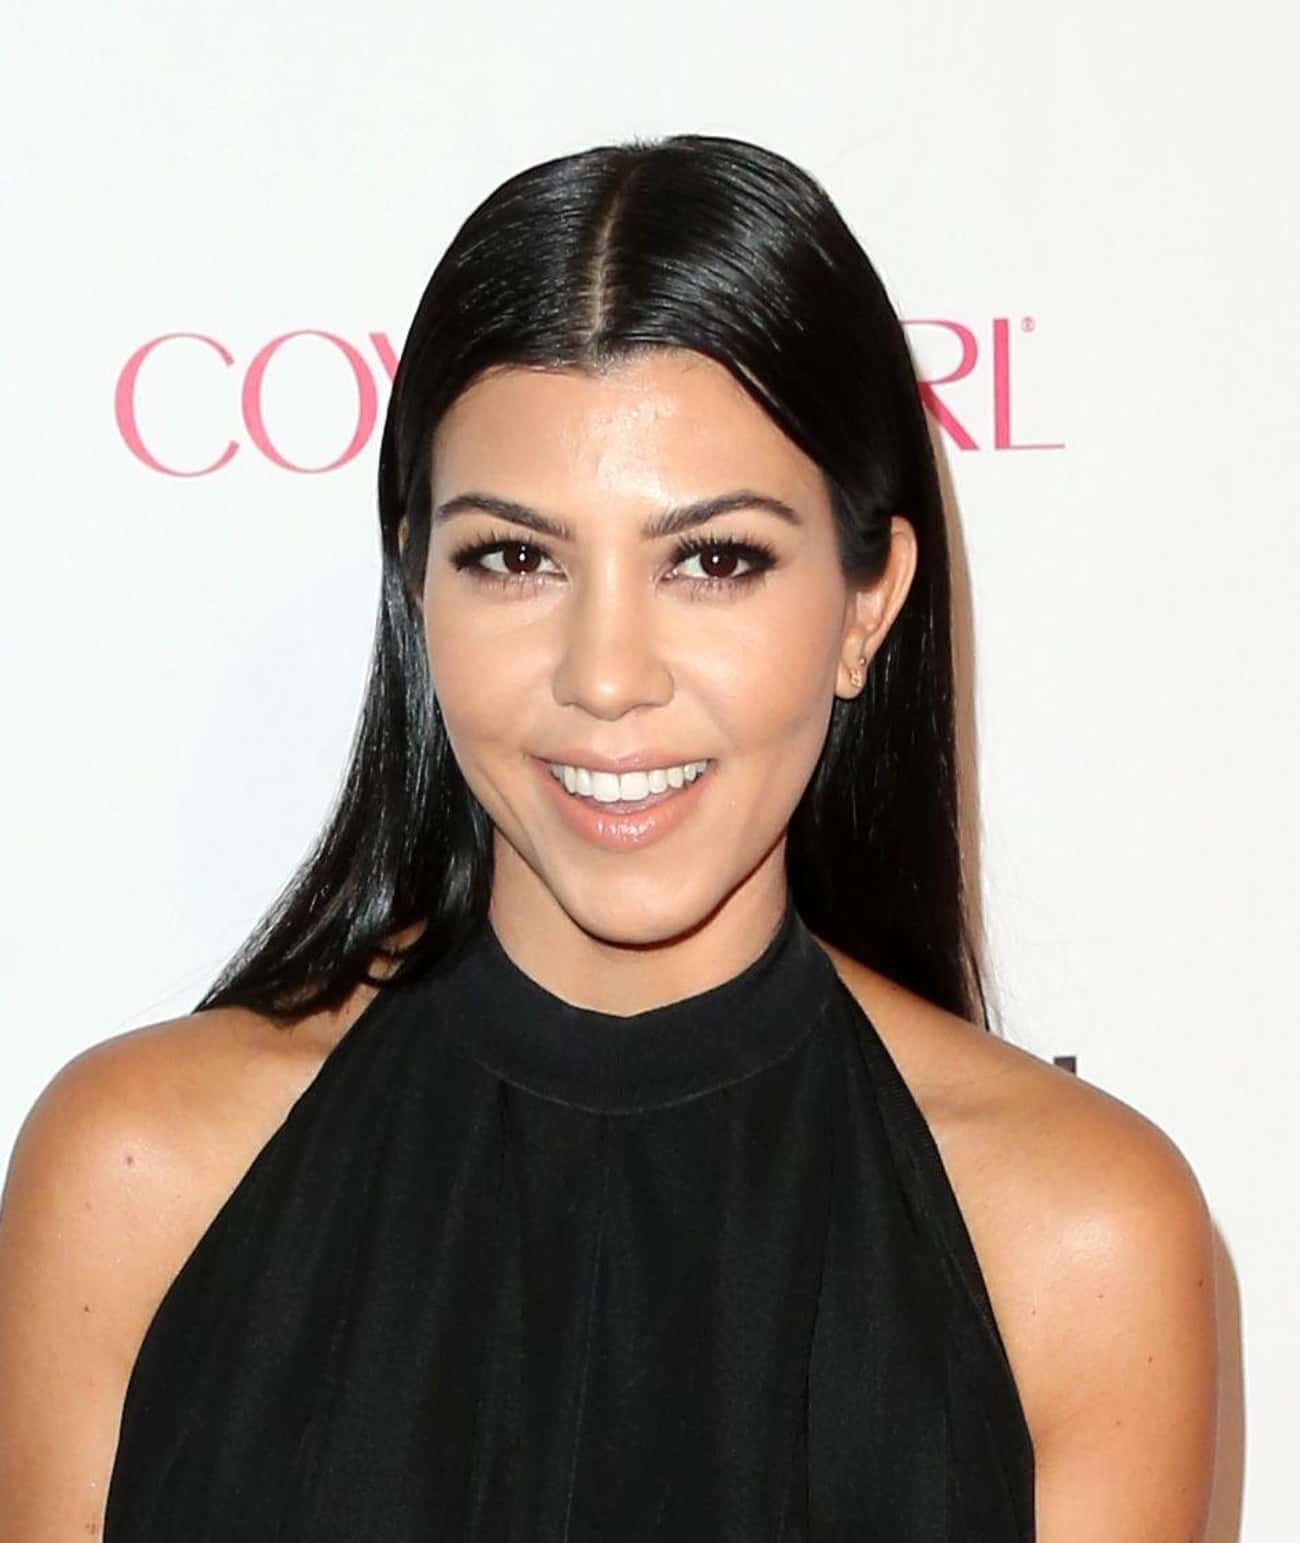 Kourtney Kardashian is listed (or ranked) 4 on the list The Most Beautiful Members Of The Kardashian Family